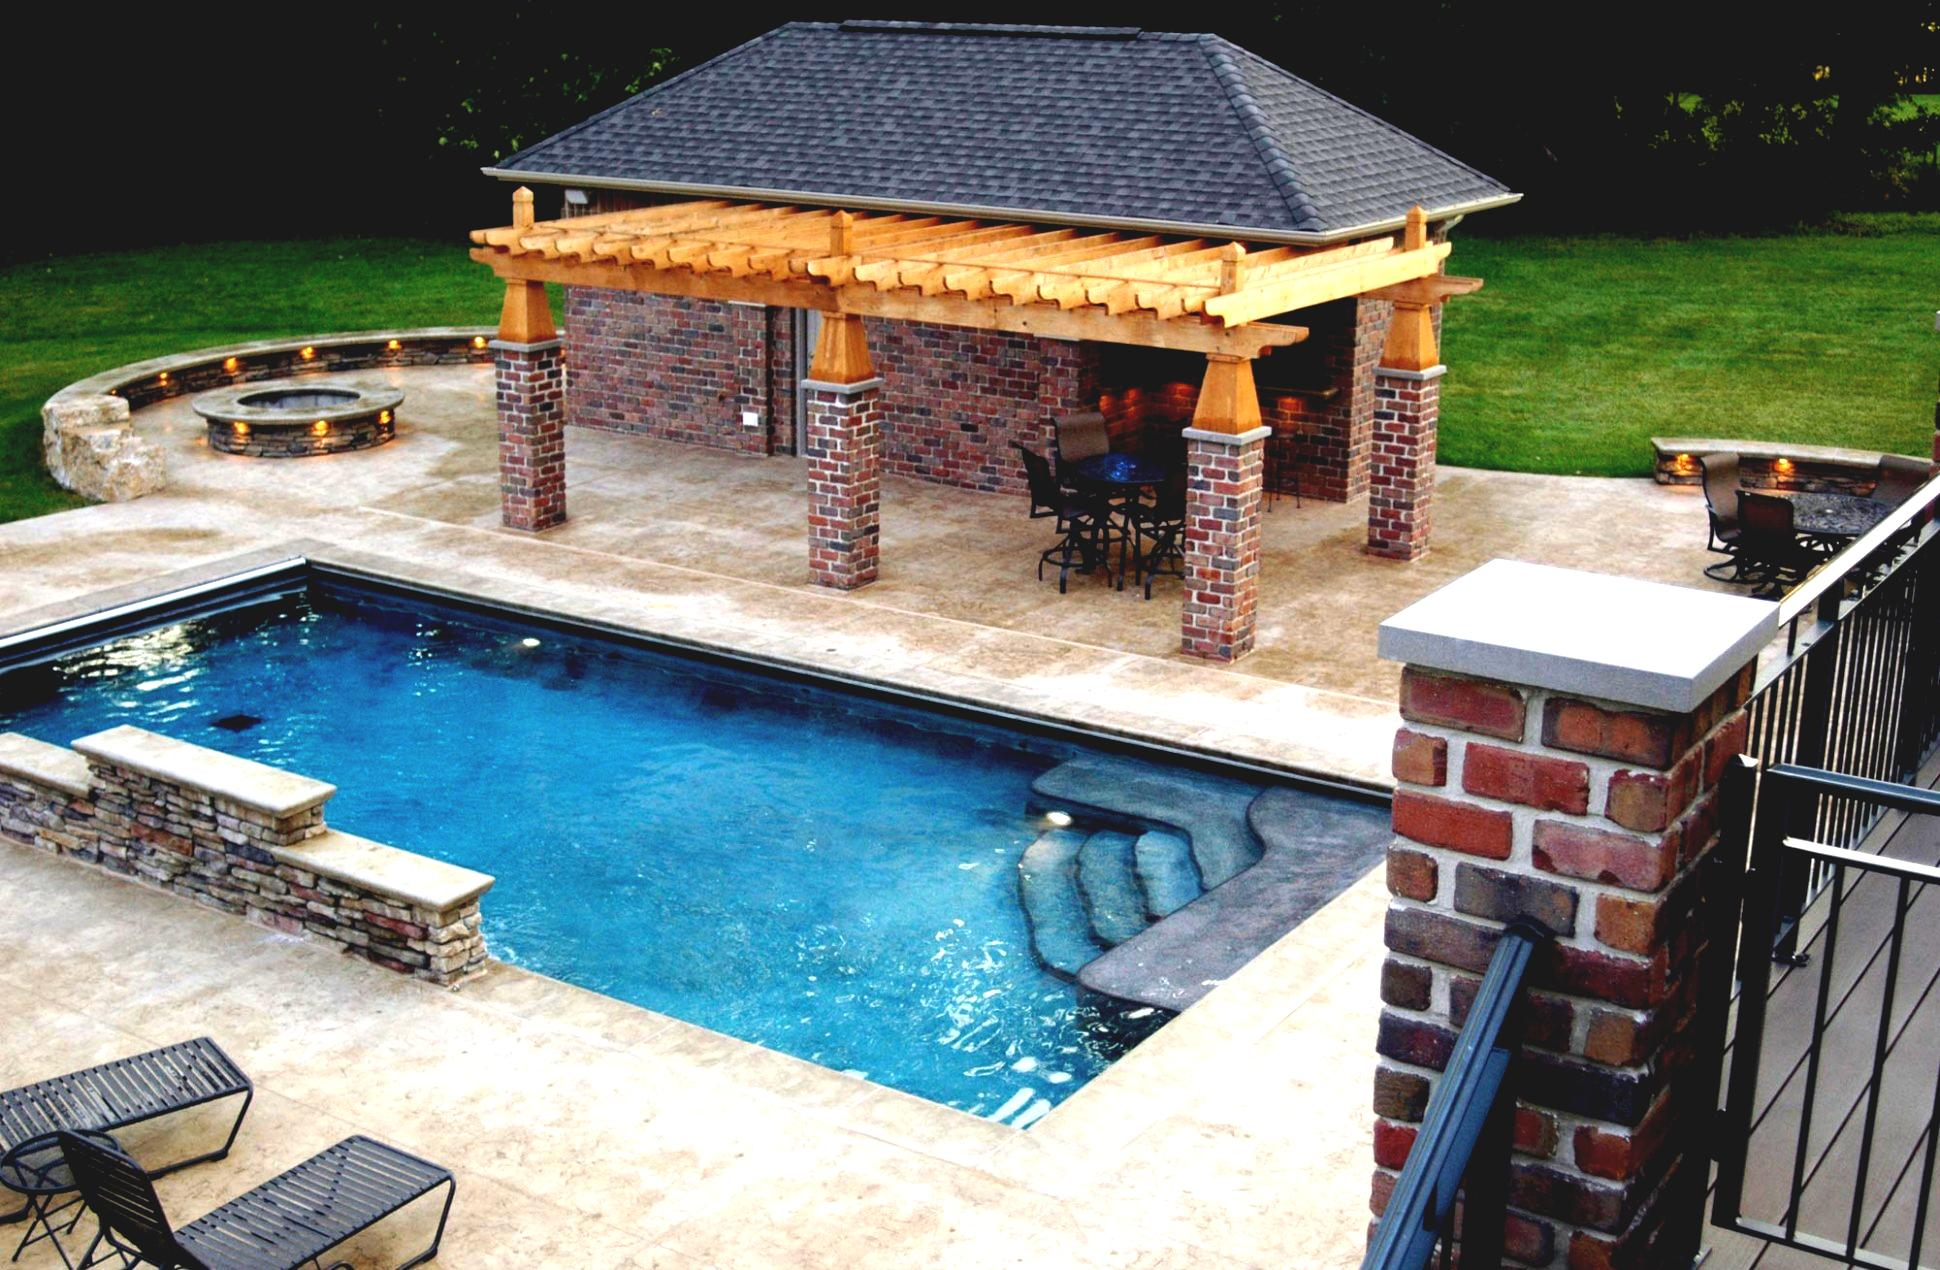 Outdoor Pool And Bar Designs Bring Out The Beauty With